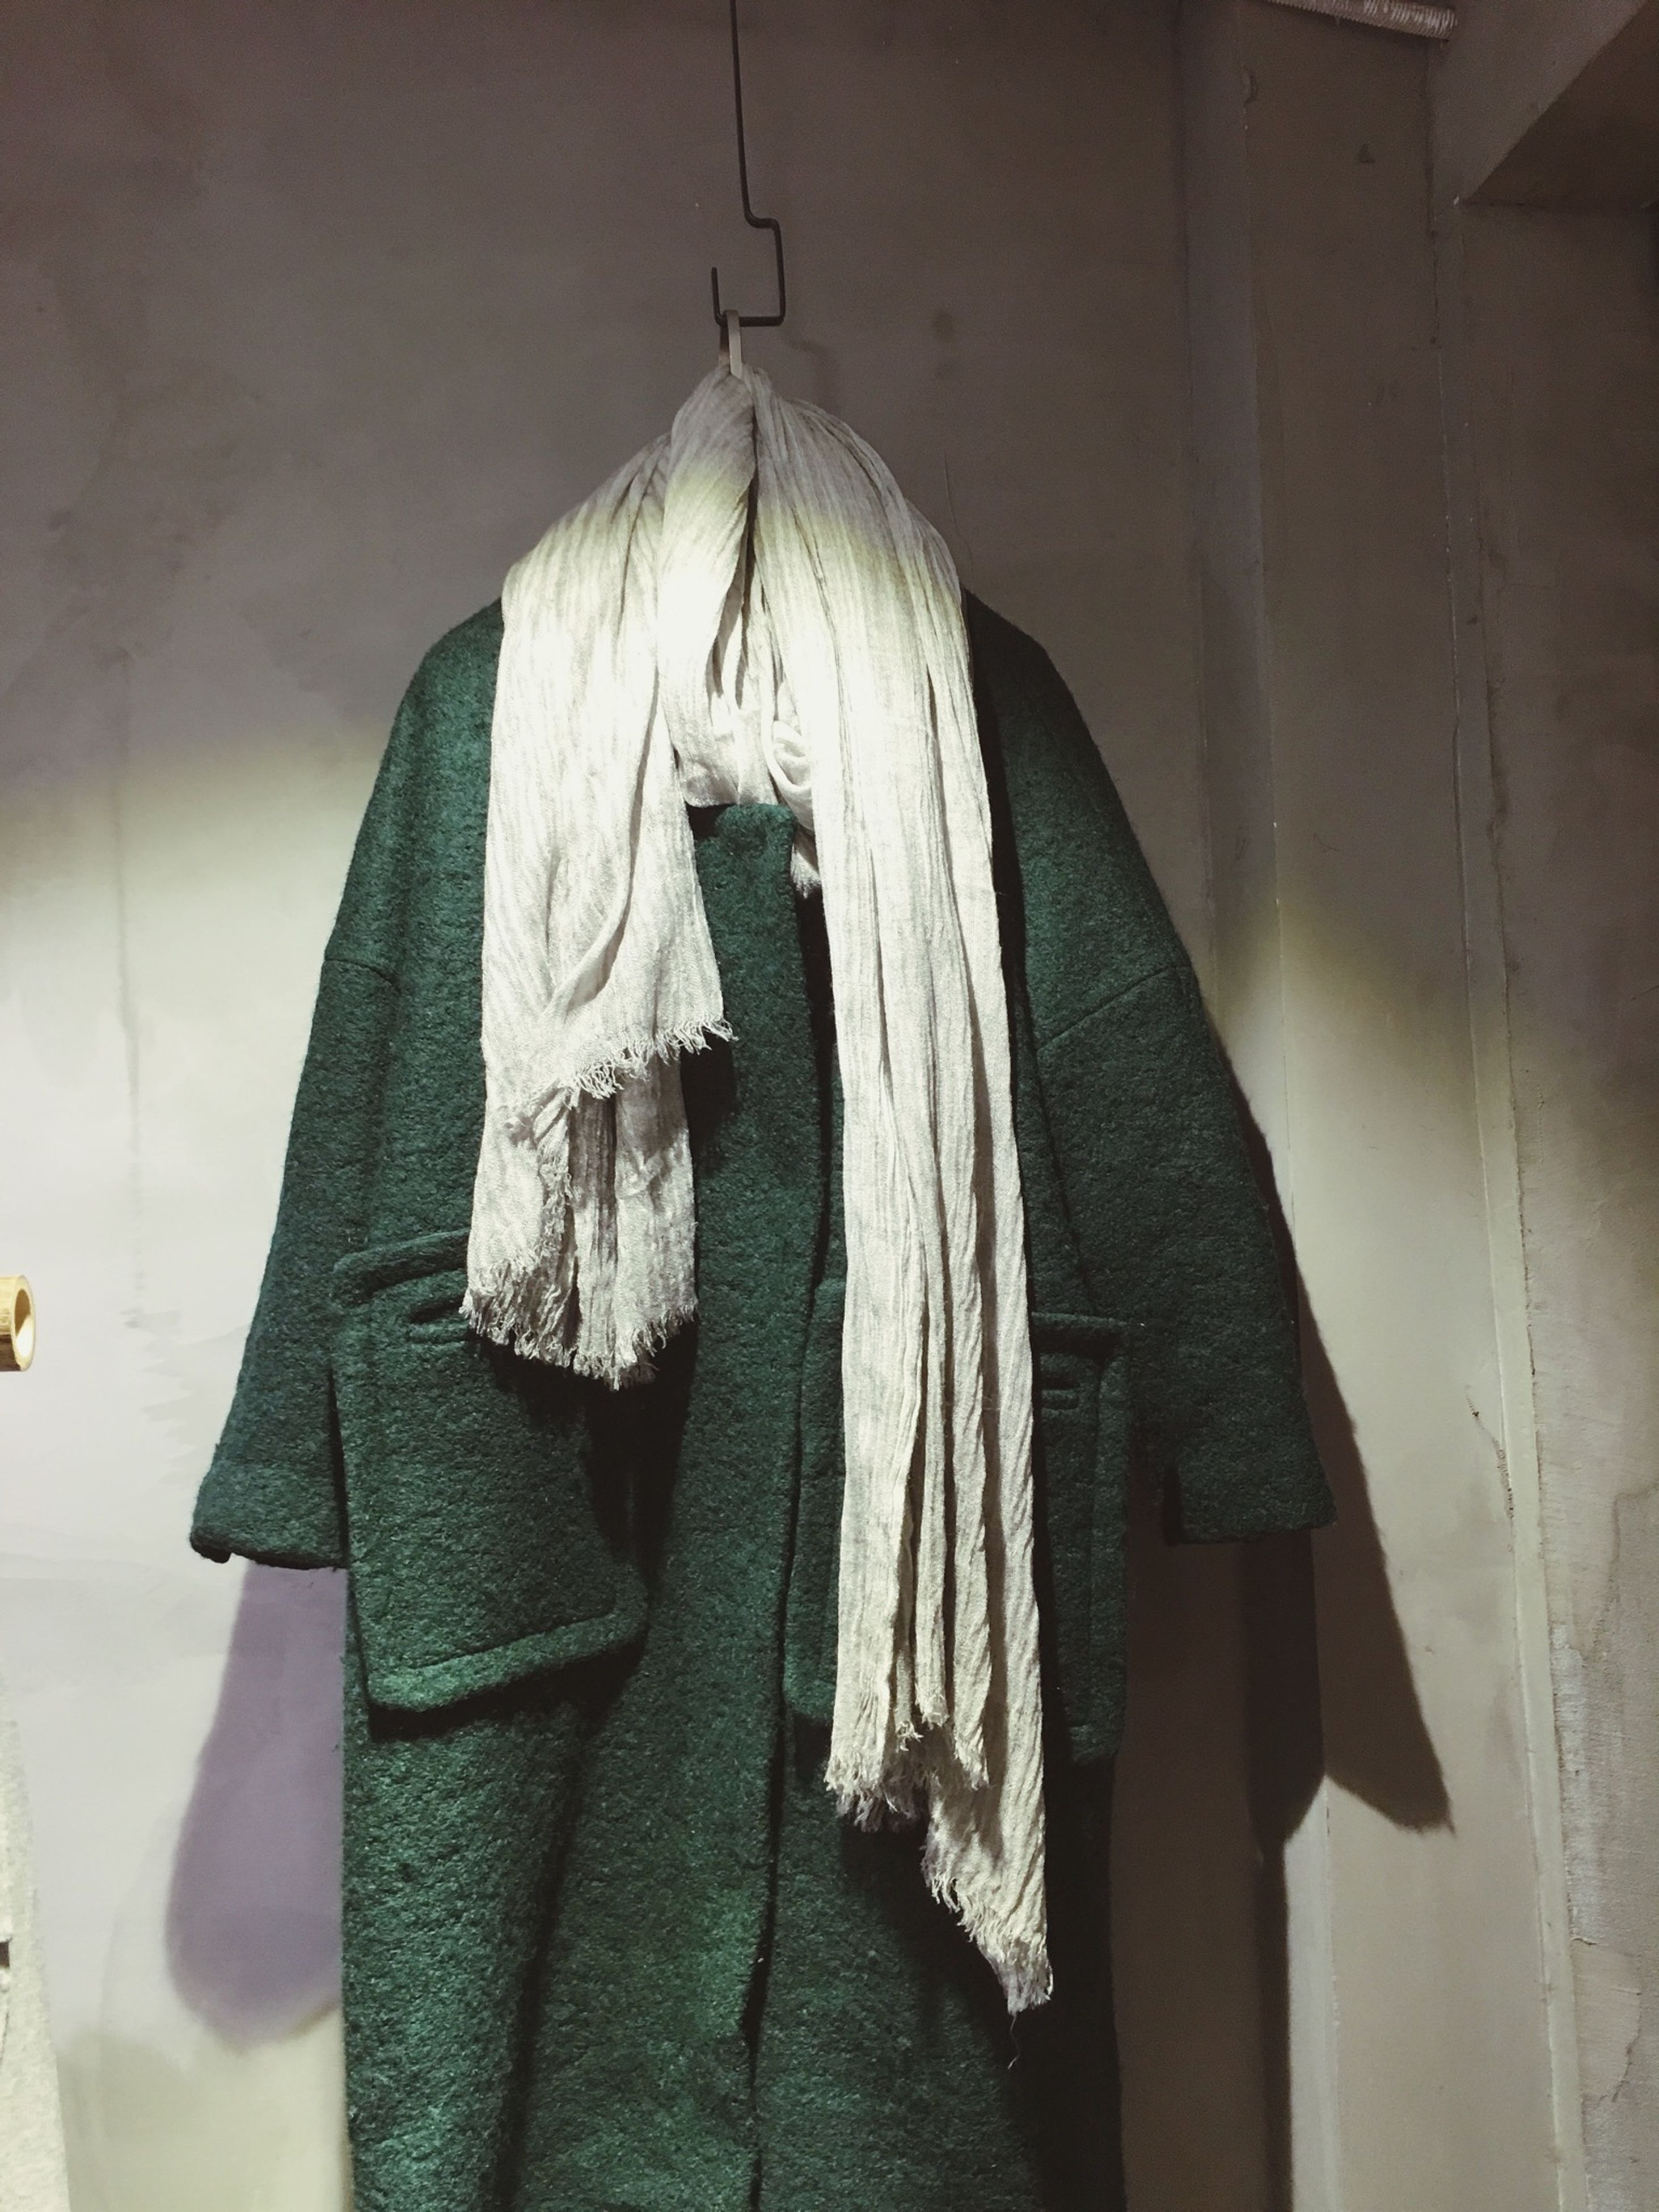 indoors, religion, clothing, fabric, textile, hanging, spirituality, art and craft, place of worship, art, wall - building feature, human representation, creativity, cultures, church, mannequin, day